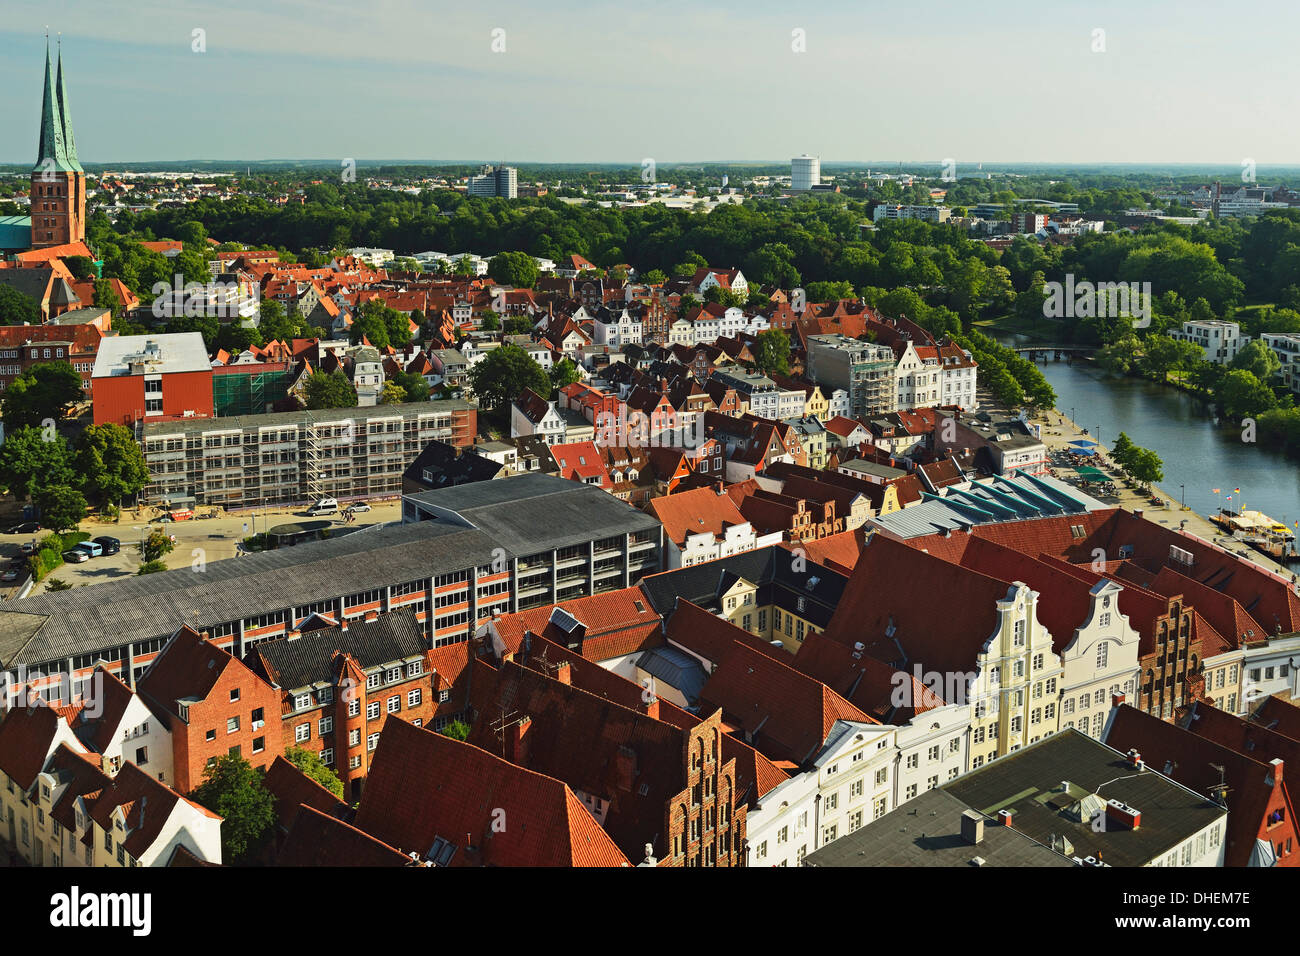 Aerial view of Lubeck, Schleswig-Holstein, Germany, Europe - Stock Image